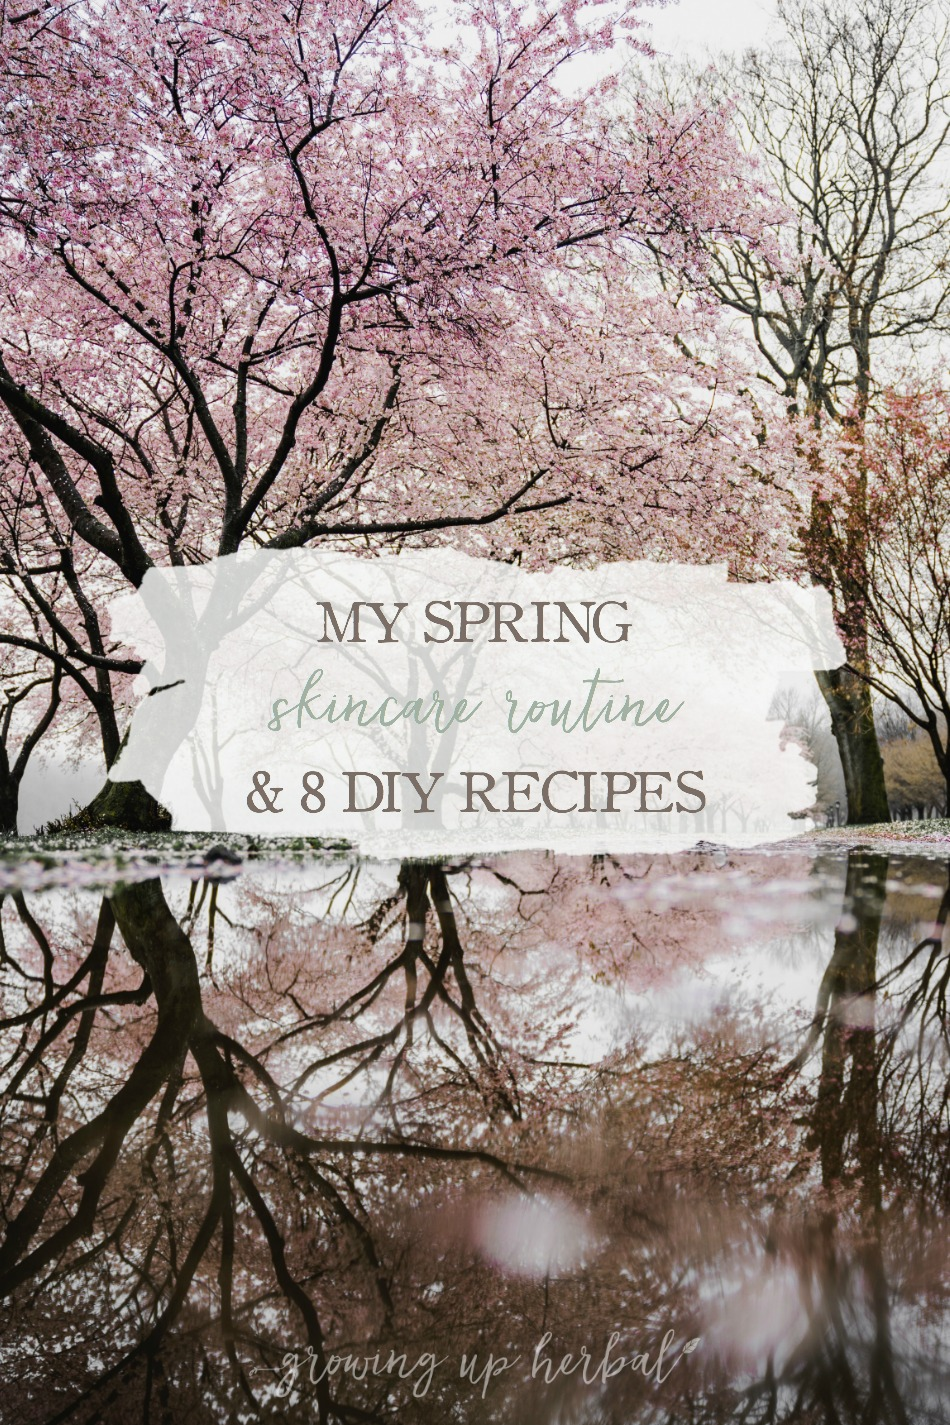 My Spring Skincare Routine & 8 DIY Recipes   Growing Up Herbal   Seasons change and so do skincare routines. Here are 8 DIY skin care recipes I'll be using to care for my skin this spring.